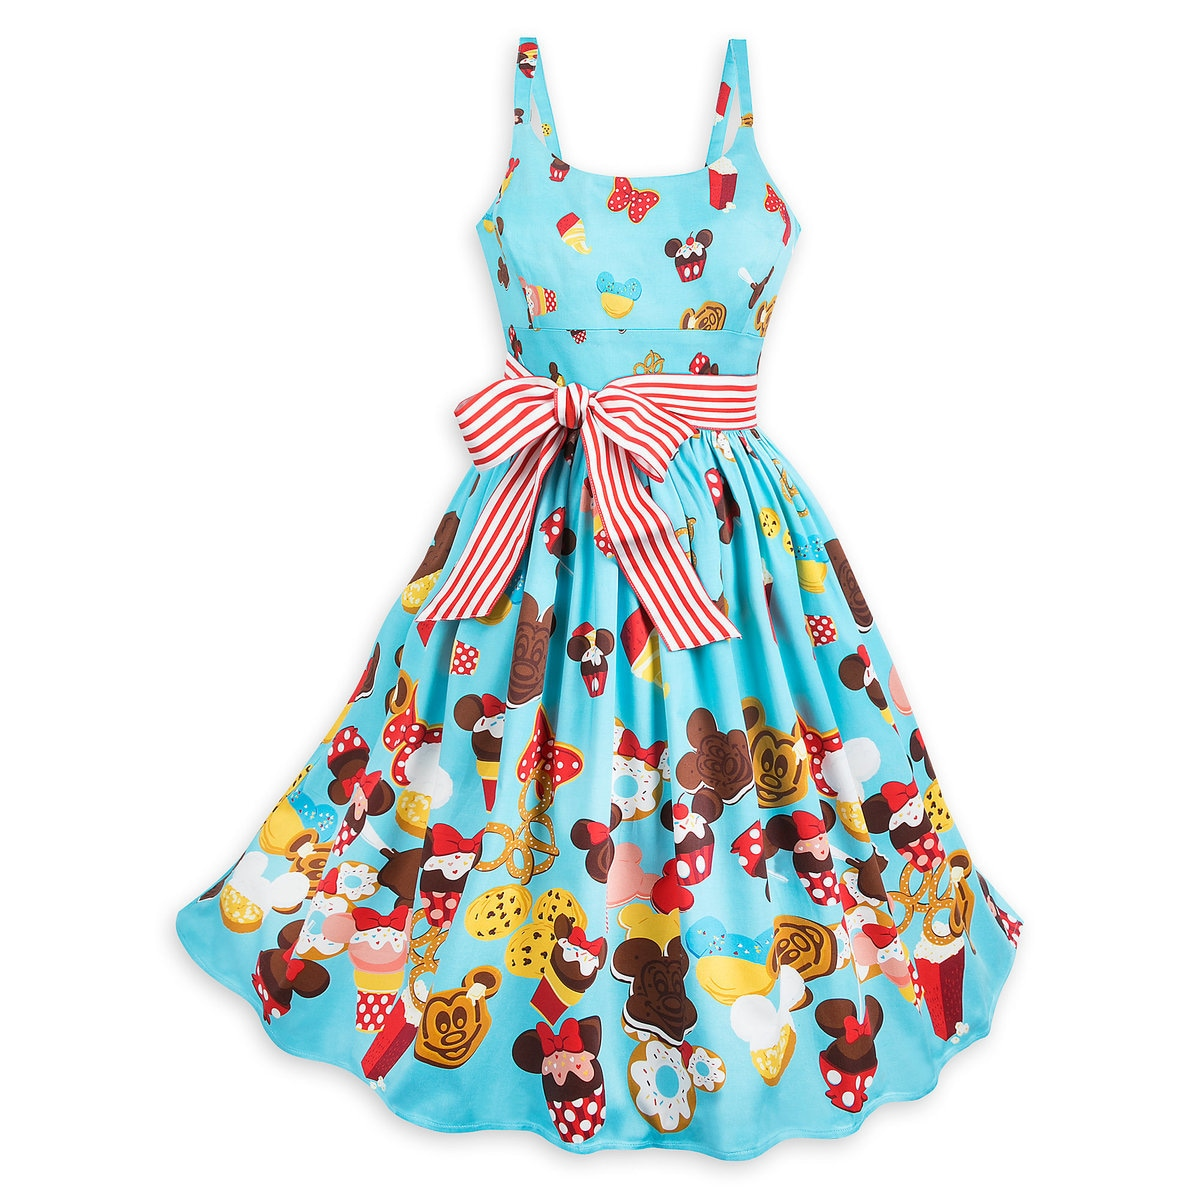 b4be9a8a7 Product Image of Disney Parks Food Icons Dress for Women # 1